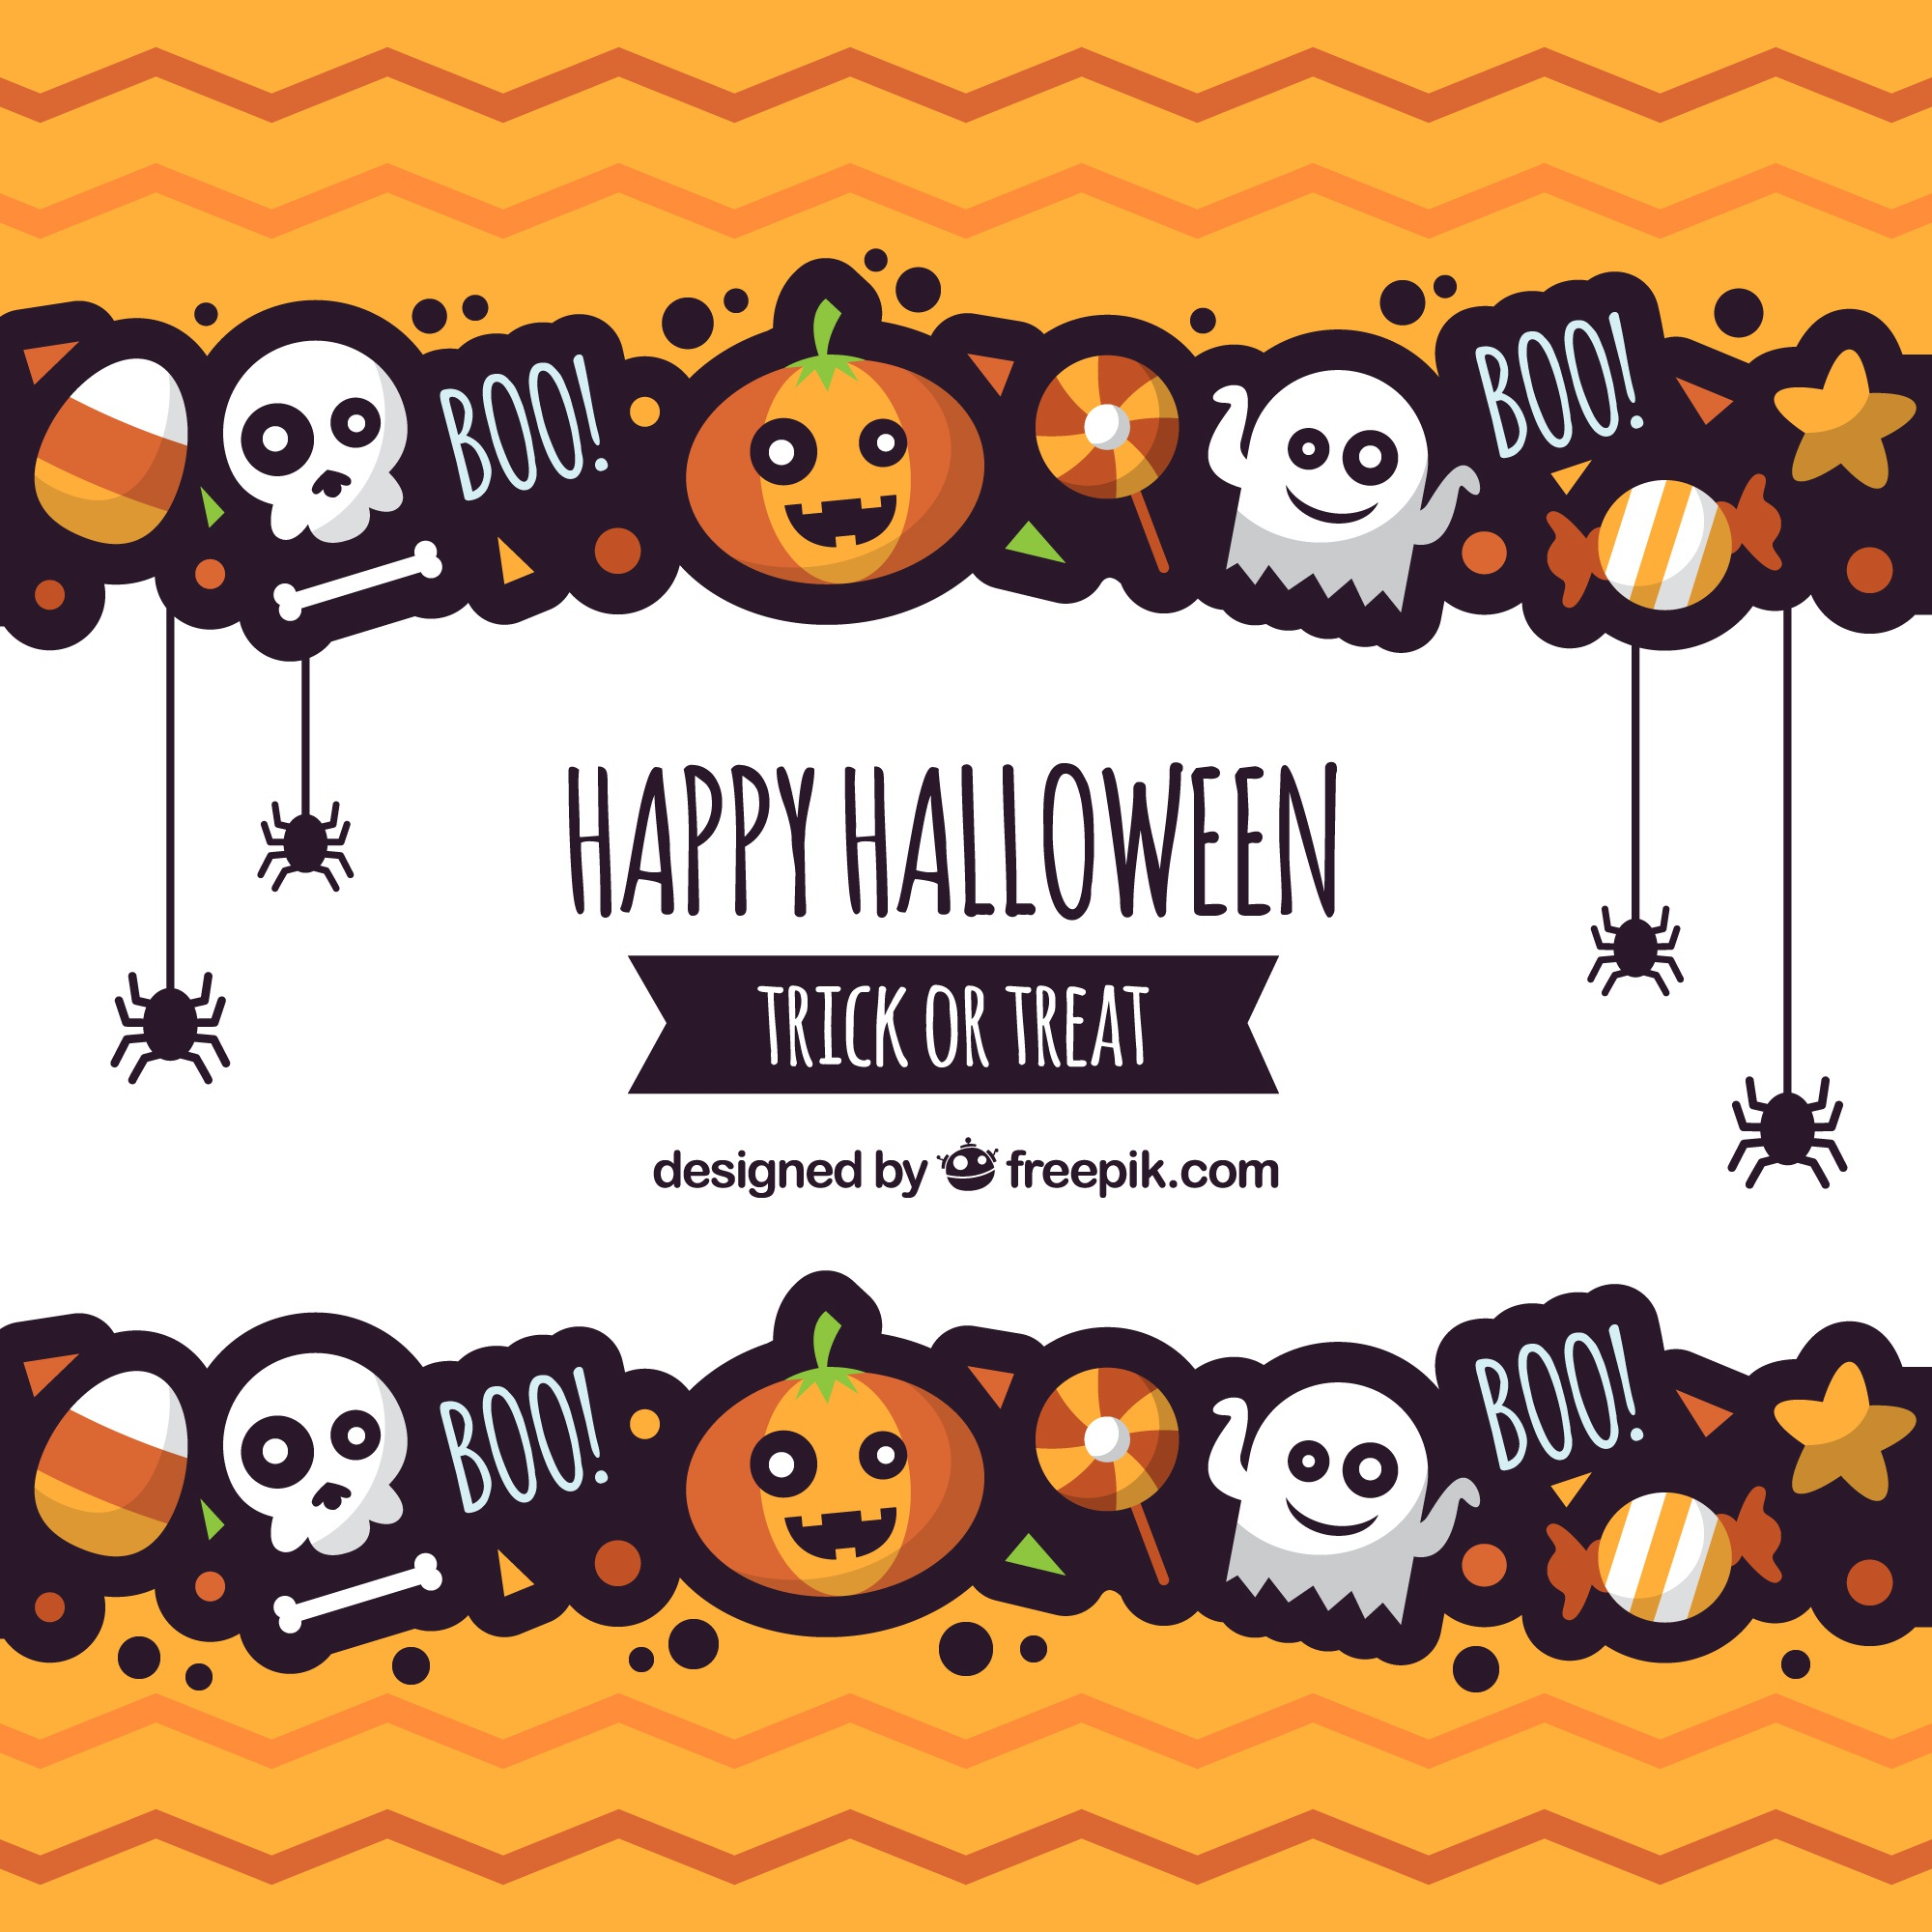 Halloween background with fun style